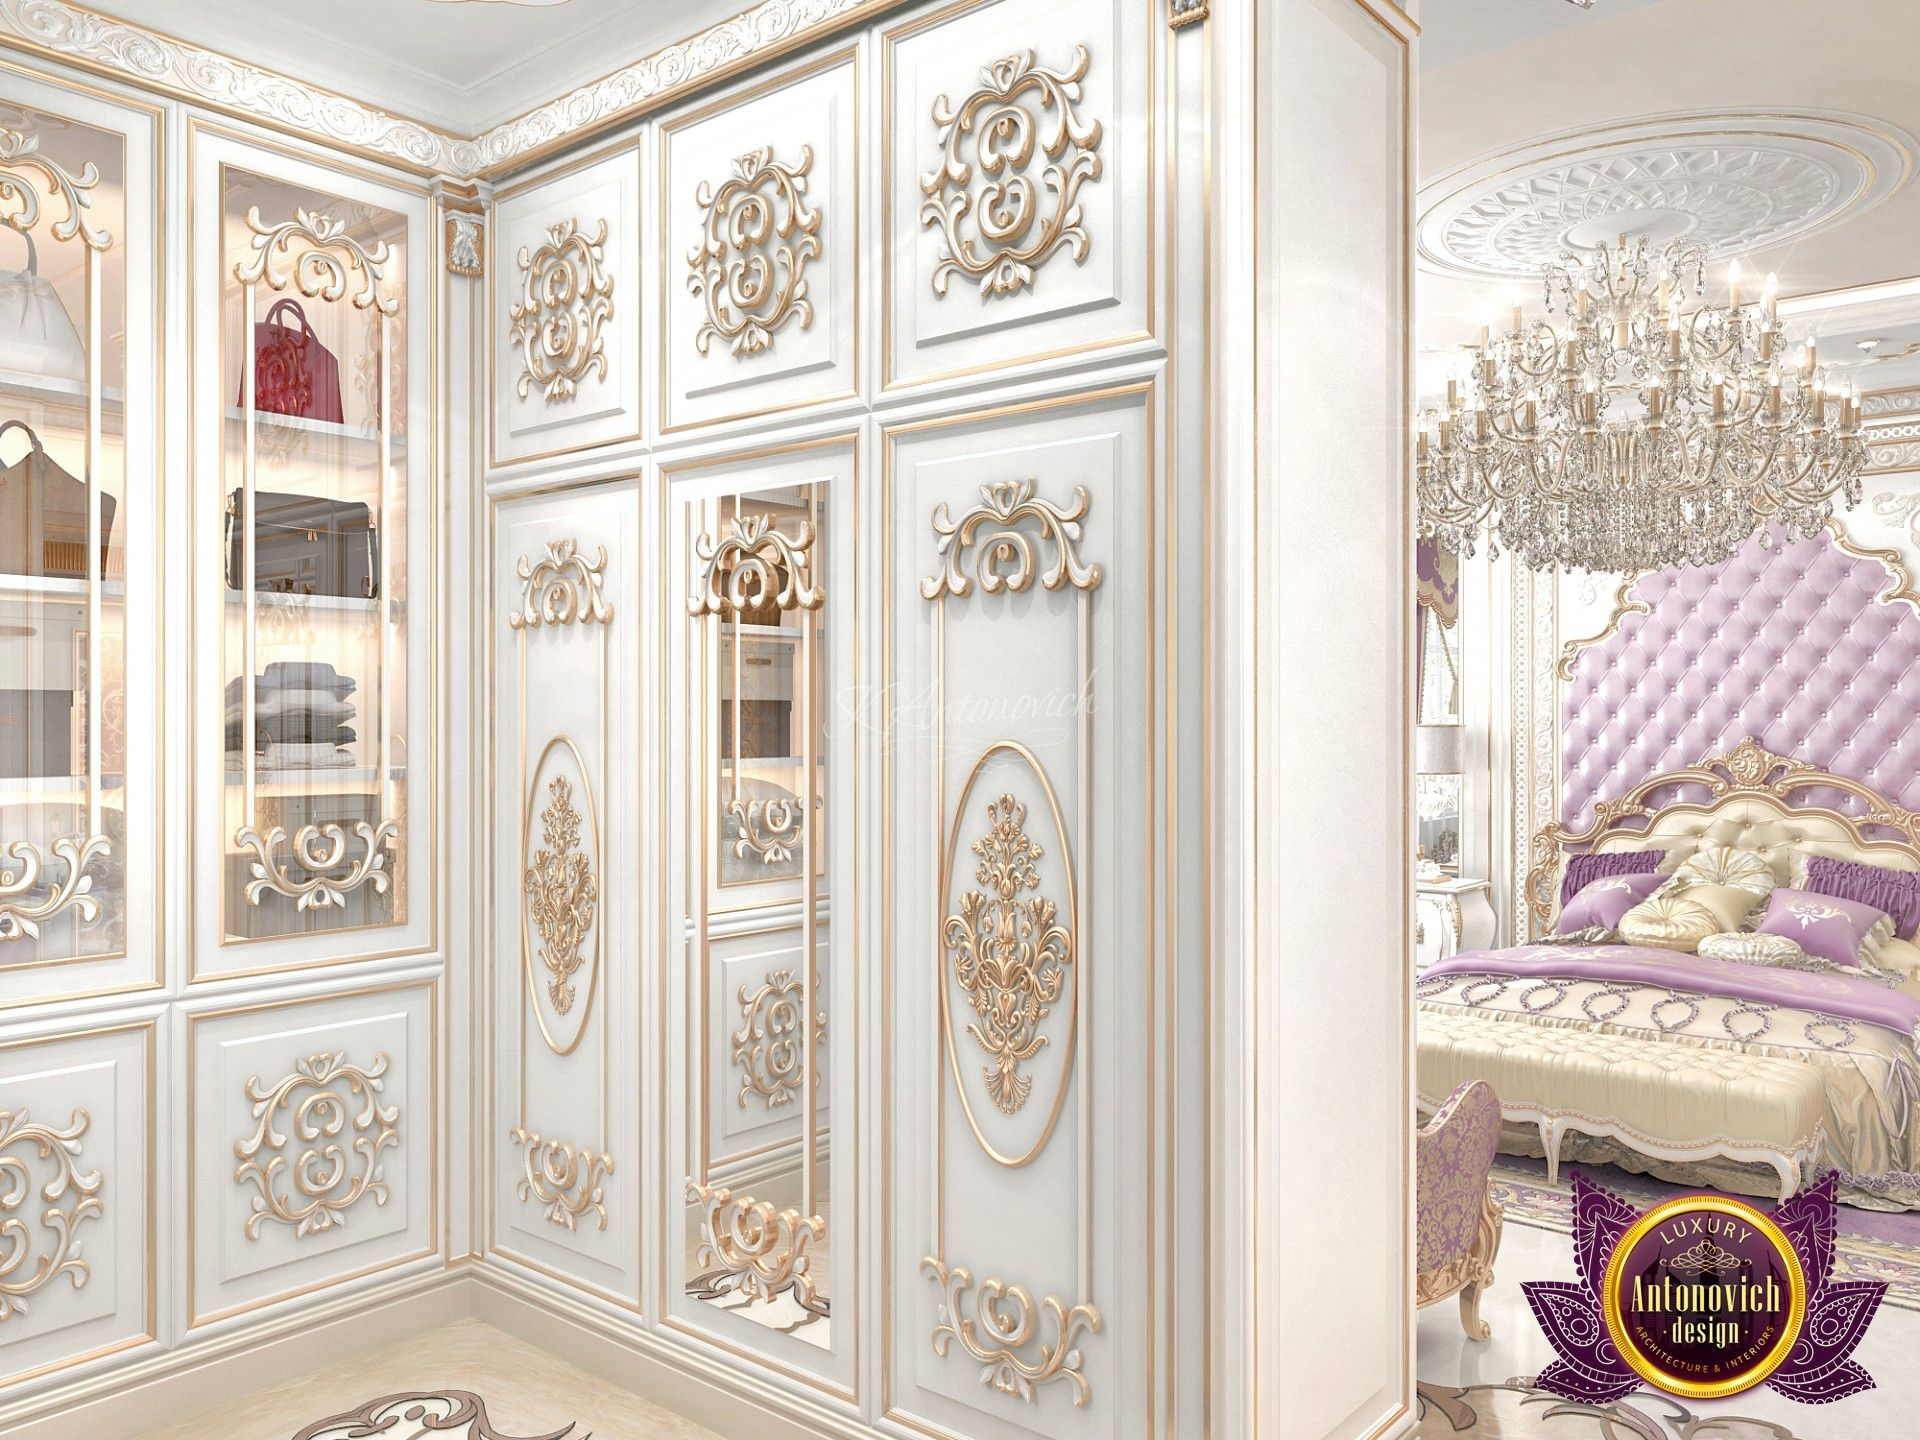 Schlafzimmerschrank Lösungen Luxurious Master Bedroom Interior Design Home In 2019 Master